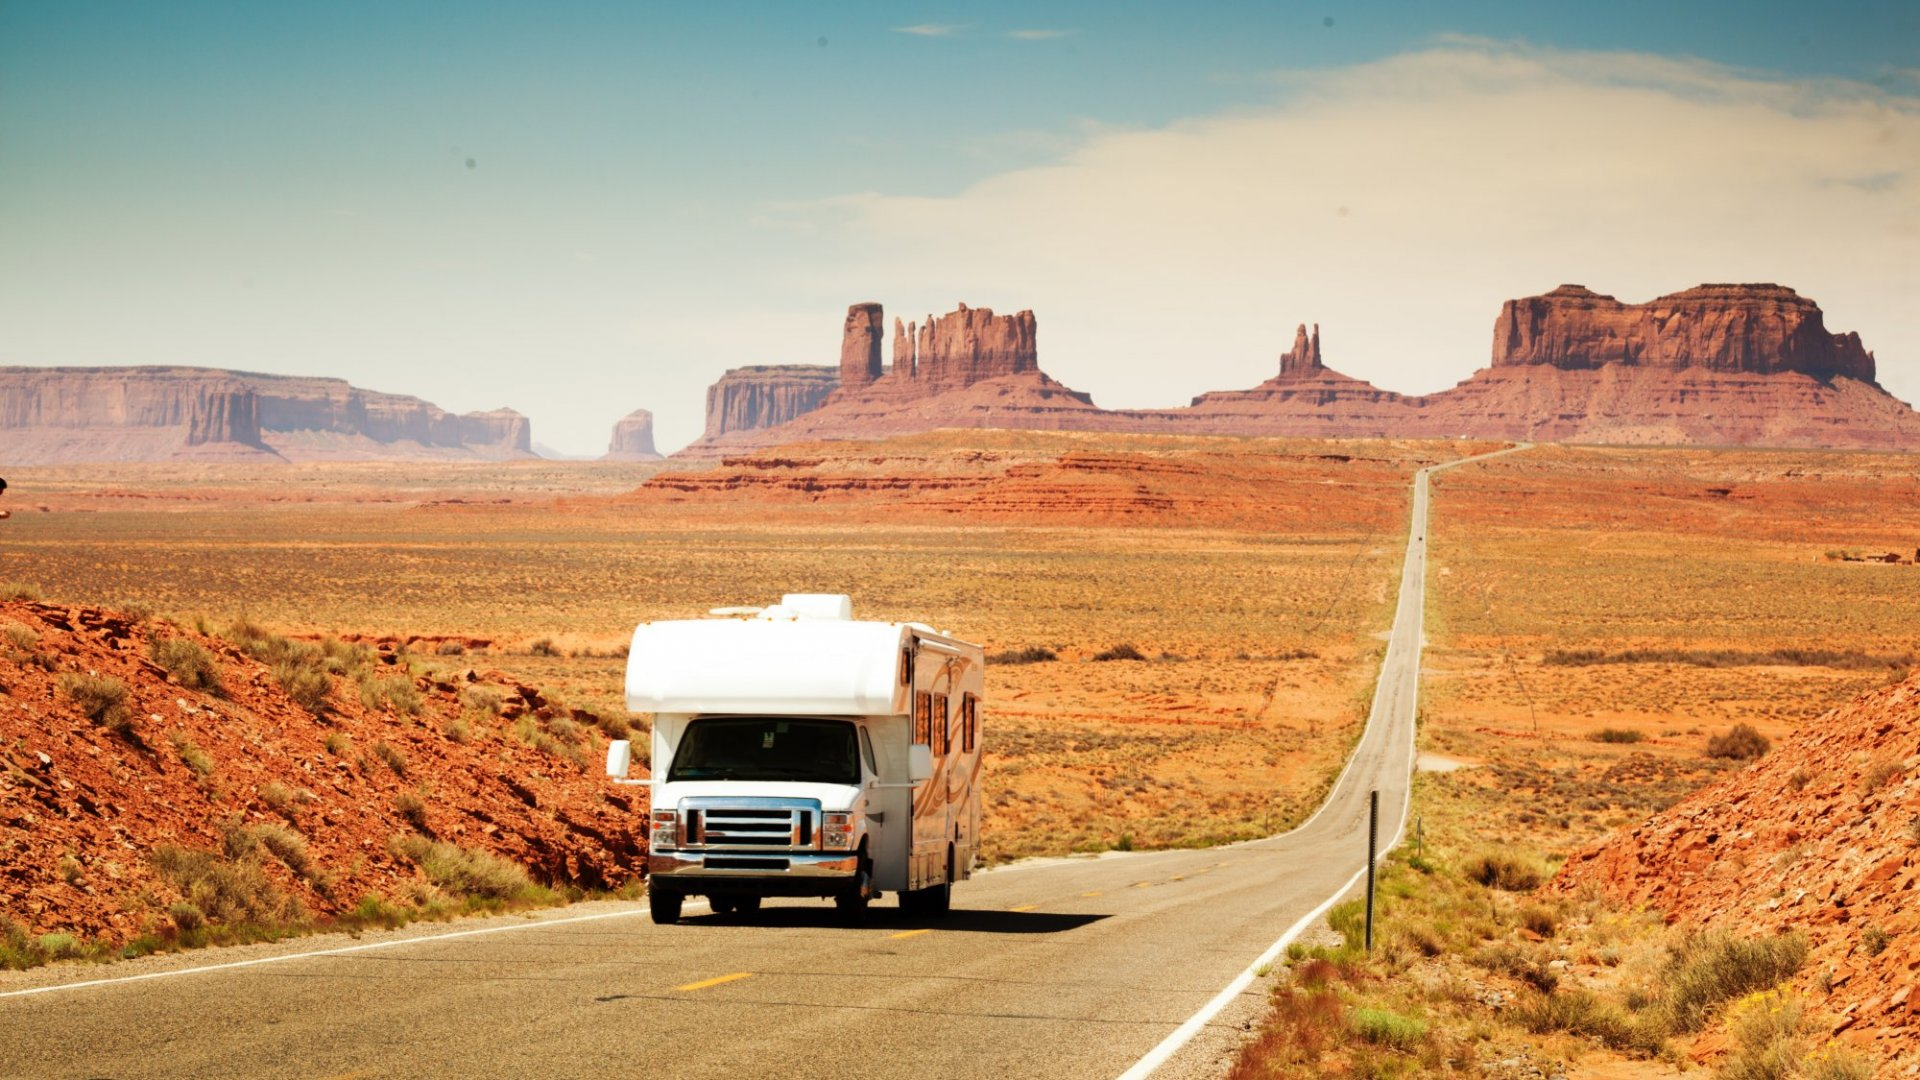 Why I'm Driving Across the U.S. in an RV to Meet Small Businesses